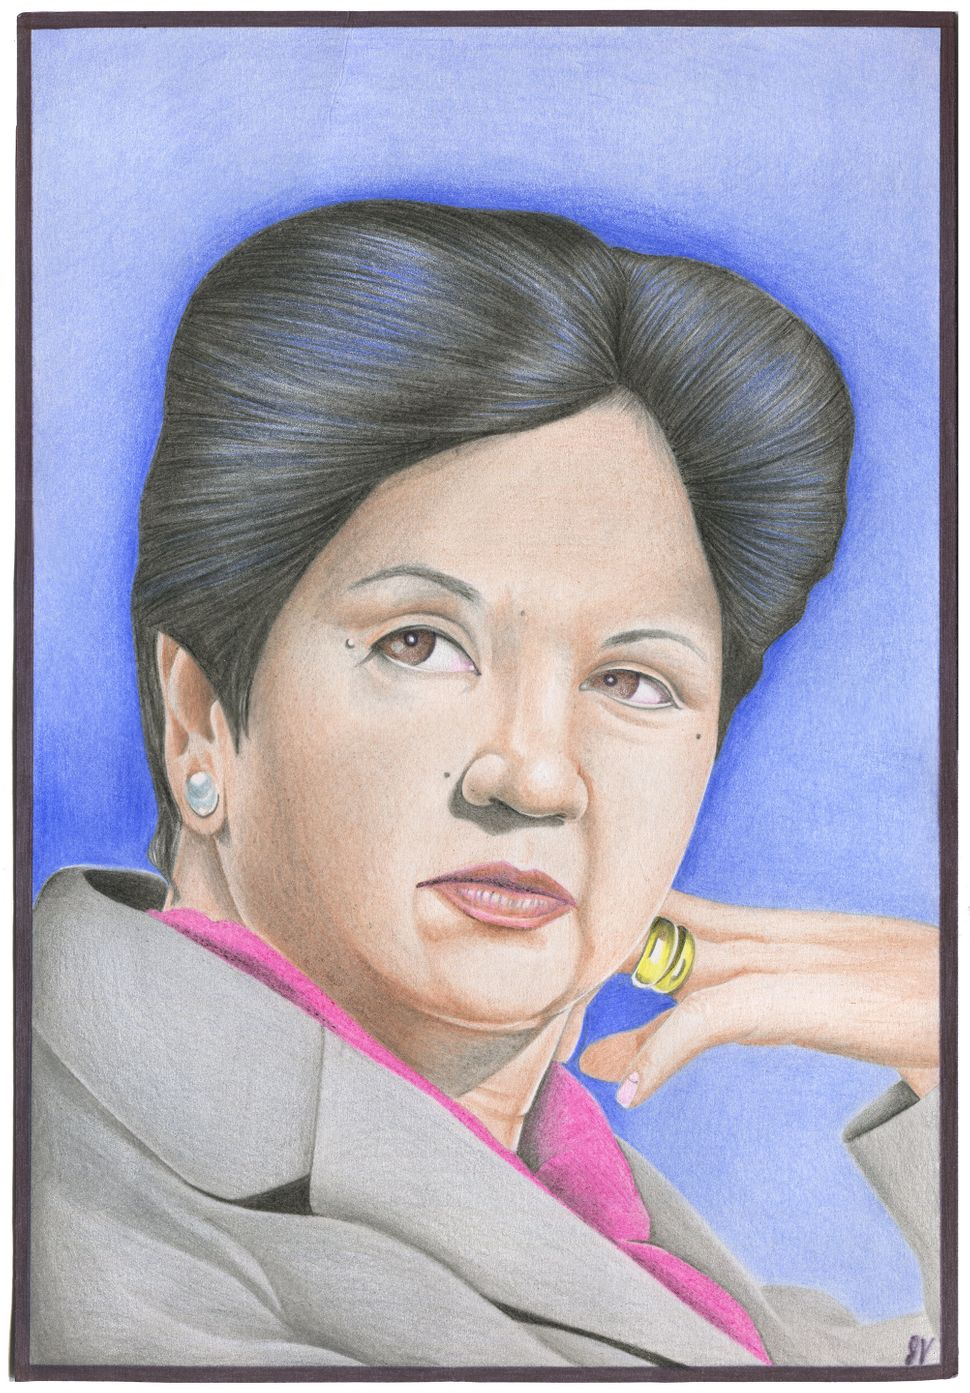 John Vercusky (Prison ID #55341-0) drew CEO of Pepsico Indra Nooyi. Nooyi is accused of accessory to murder, conspiracy